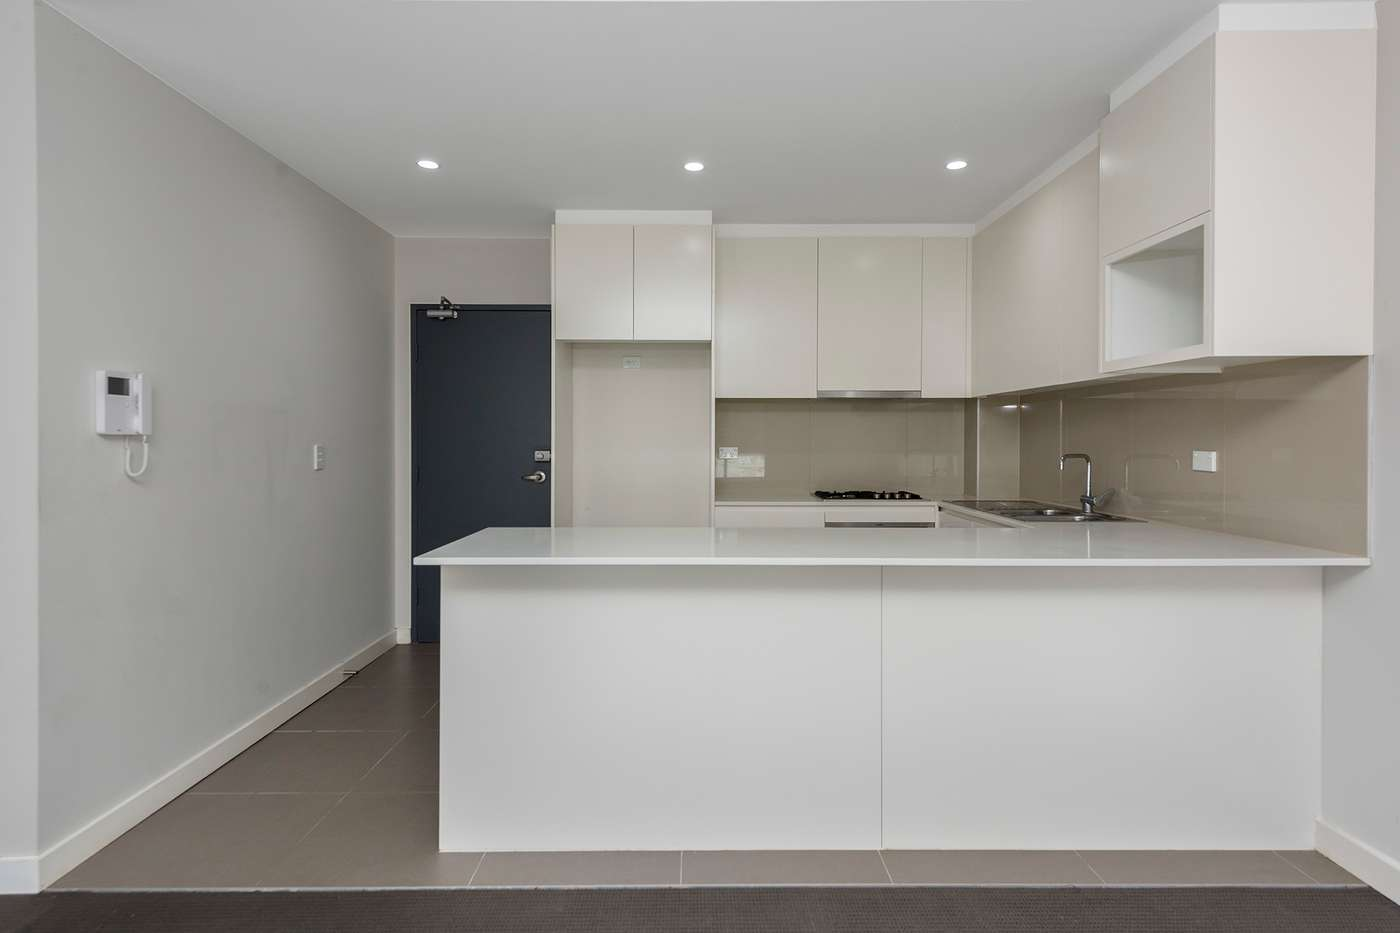 Main view of Homely apartment listing, 24/2-10 Garnet Street, Rockdale, NSW 2216